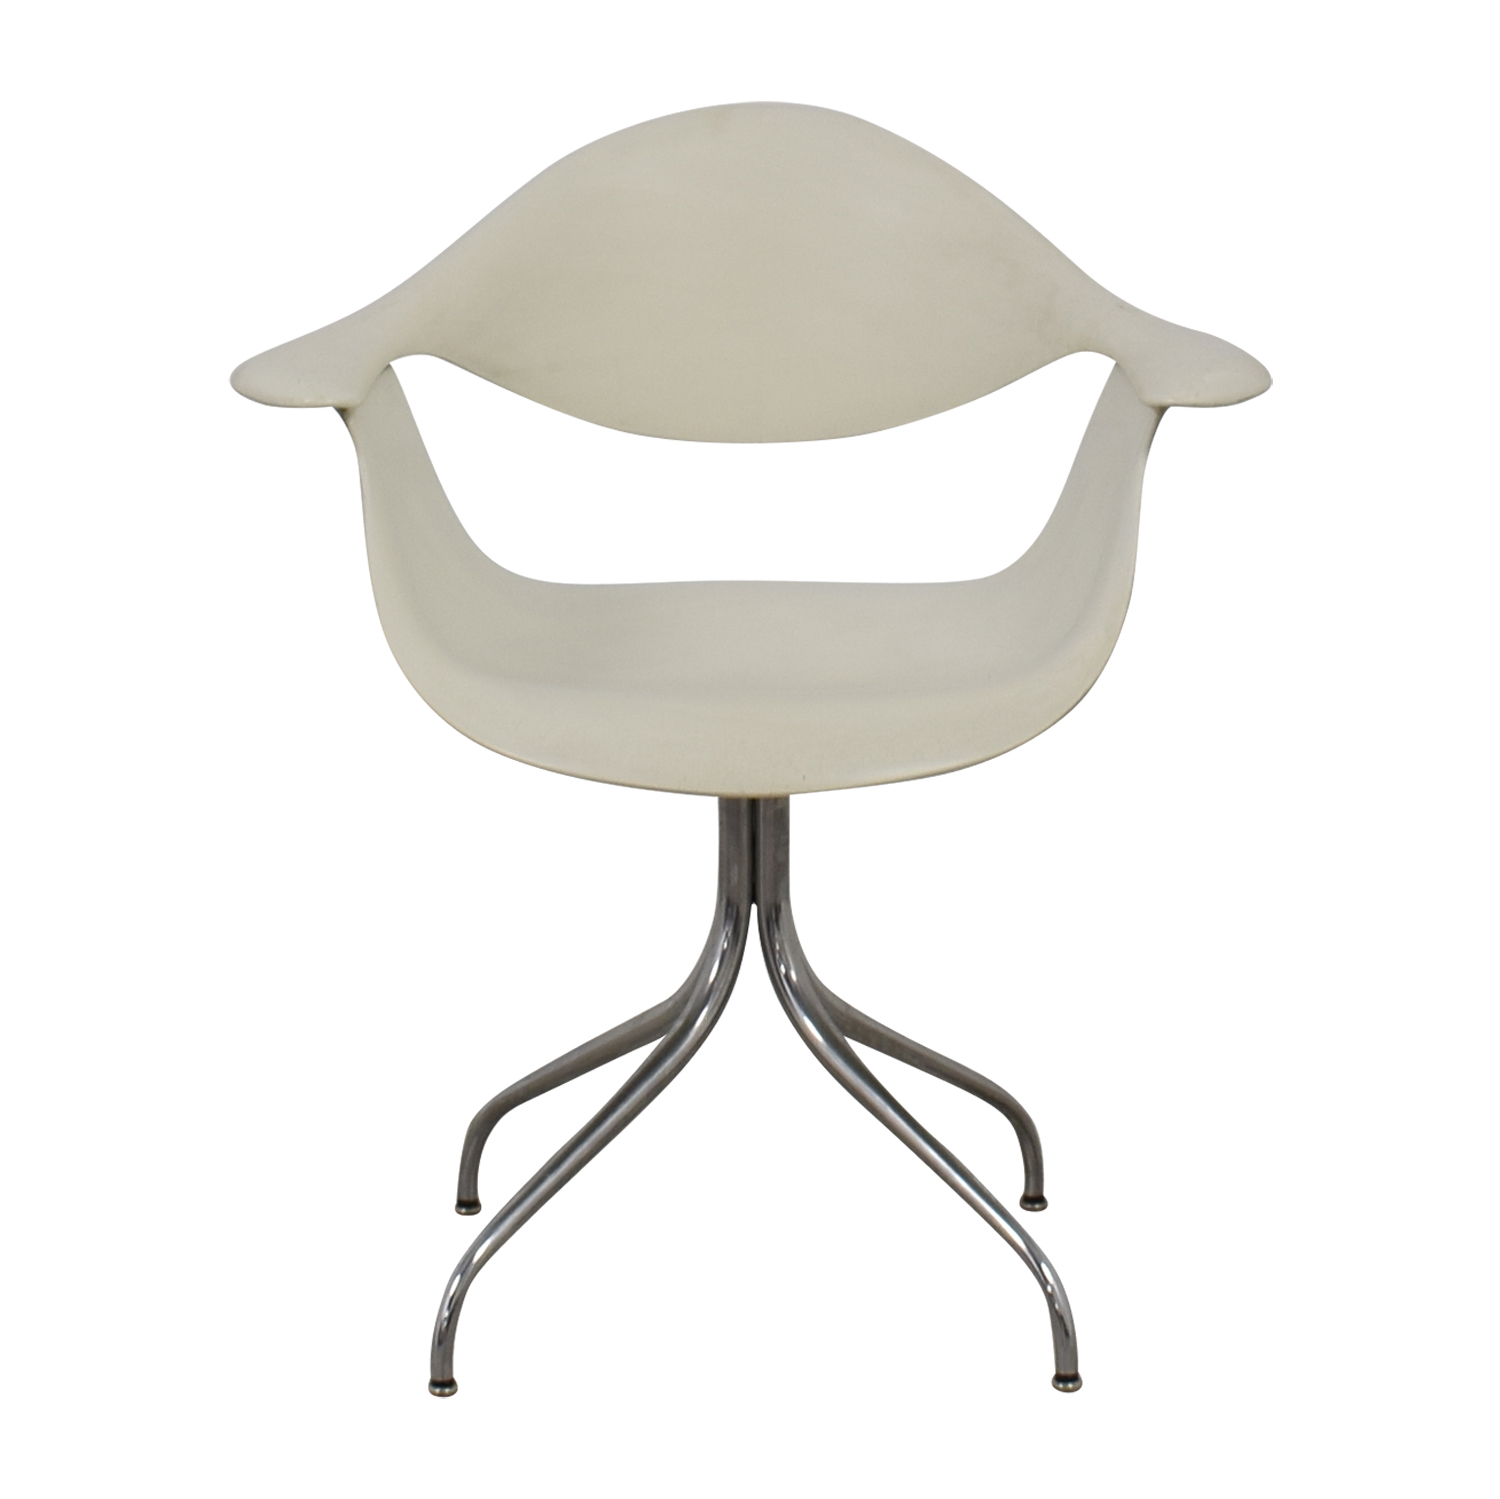 Herman Miller Herman Miller Charles Eames White Desk Chair Accent Chairs